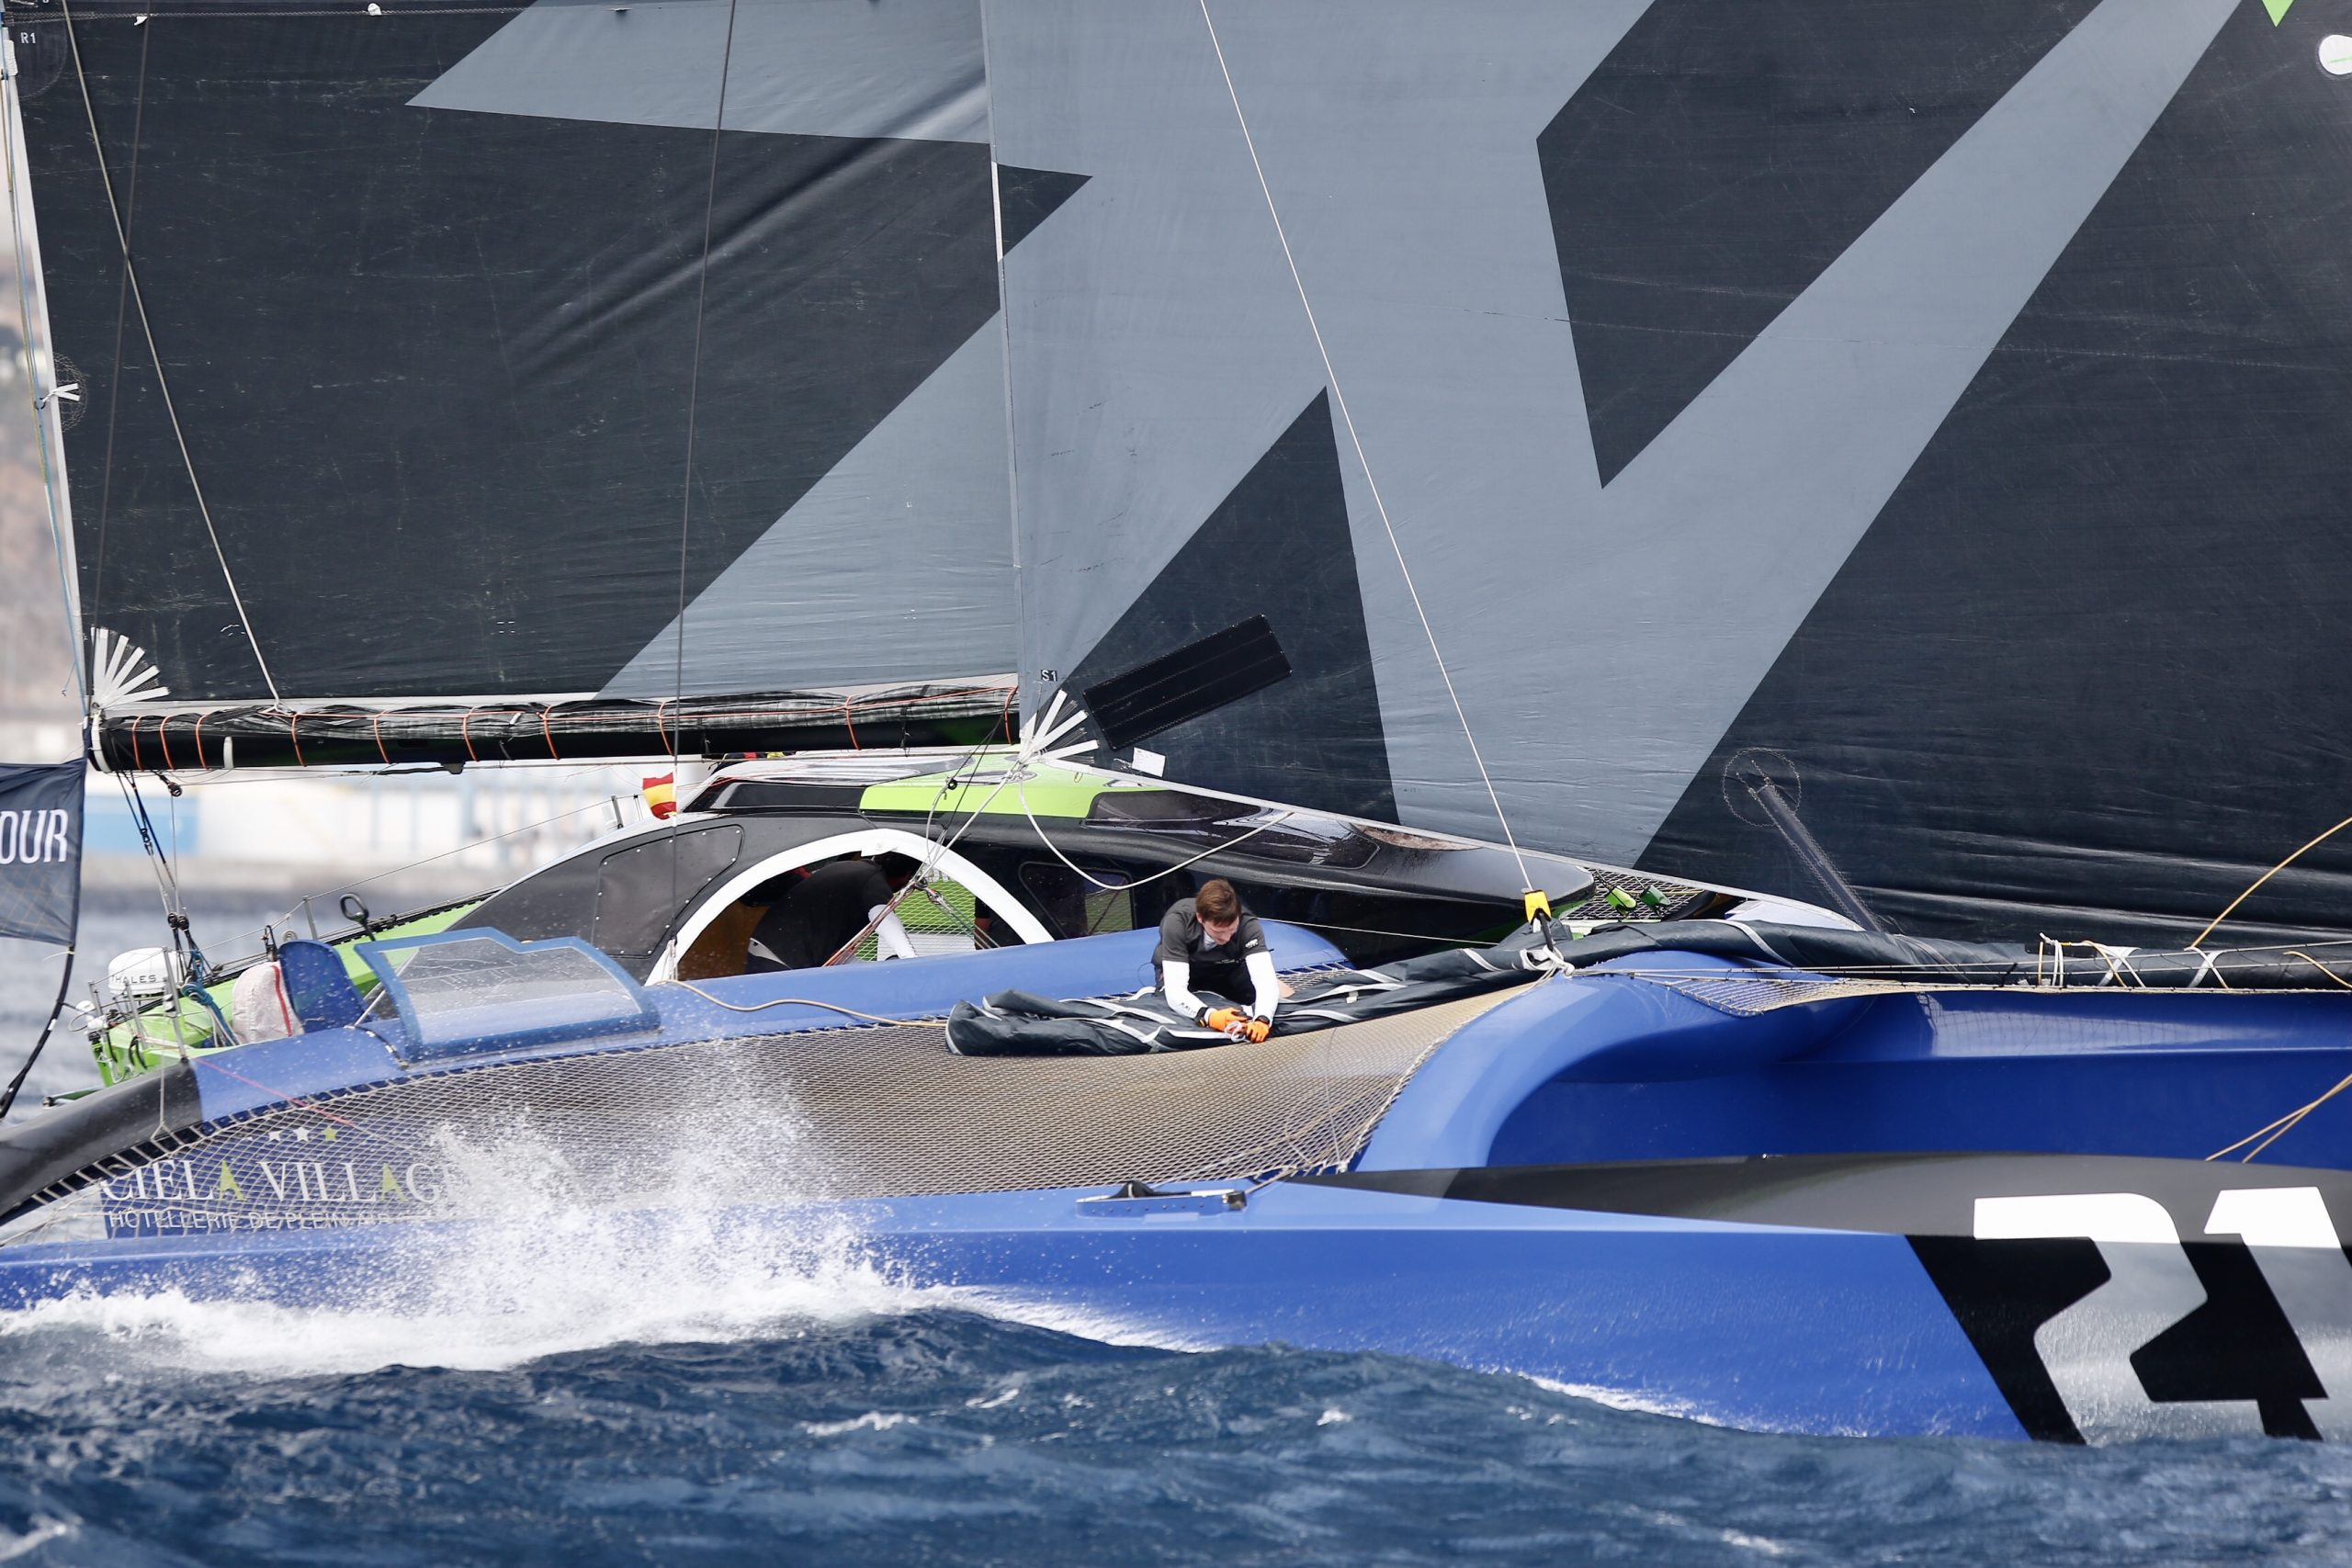 Close up of one of the boats while racing